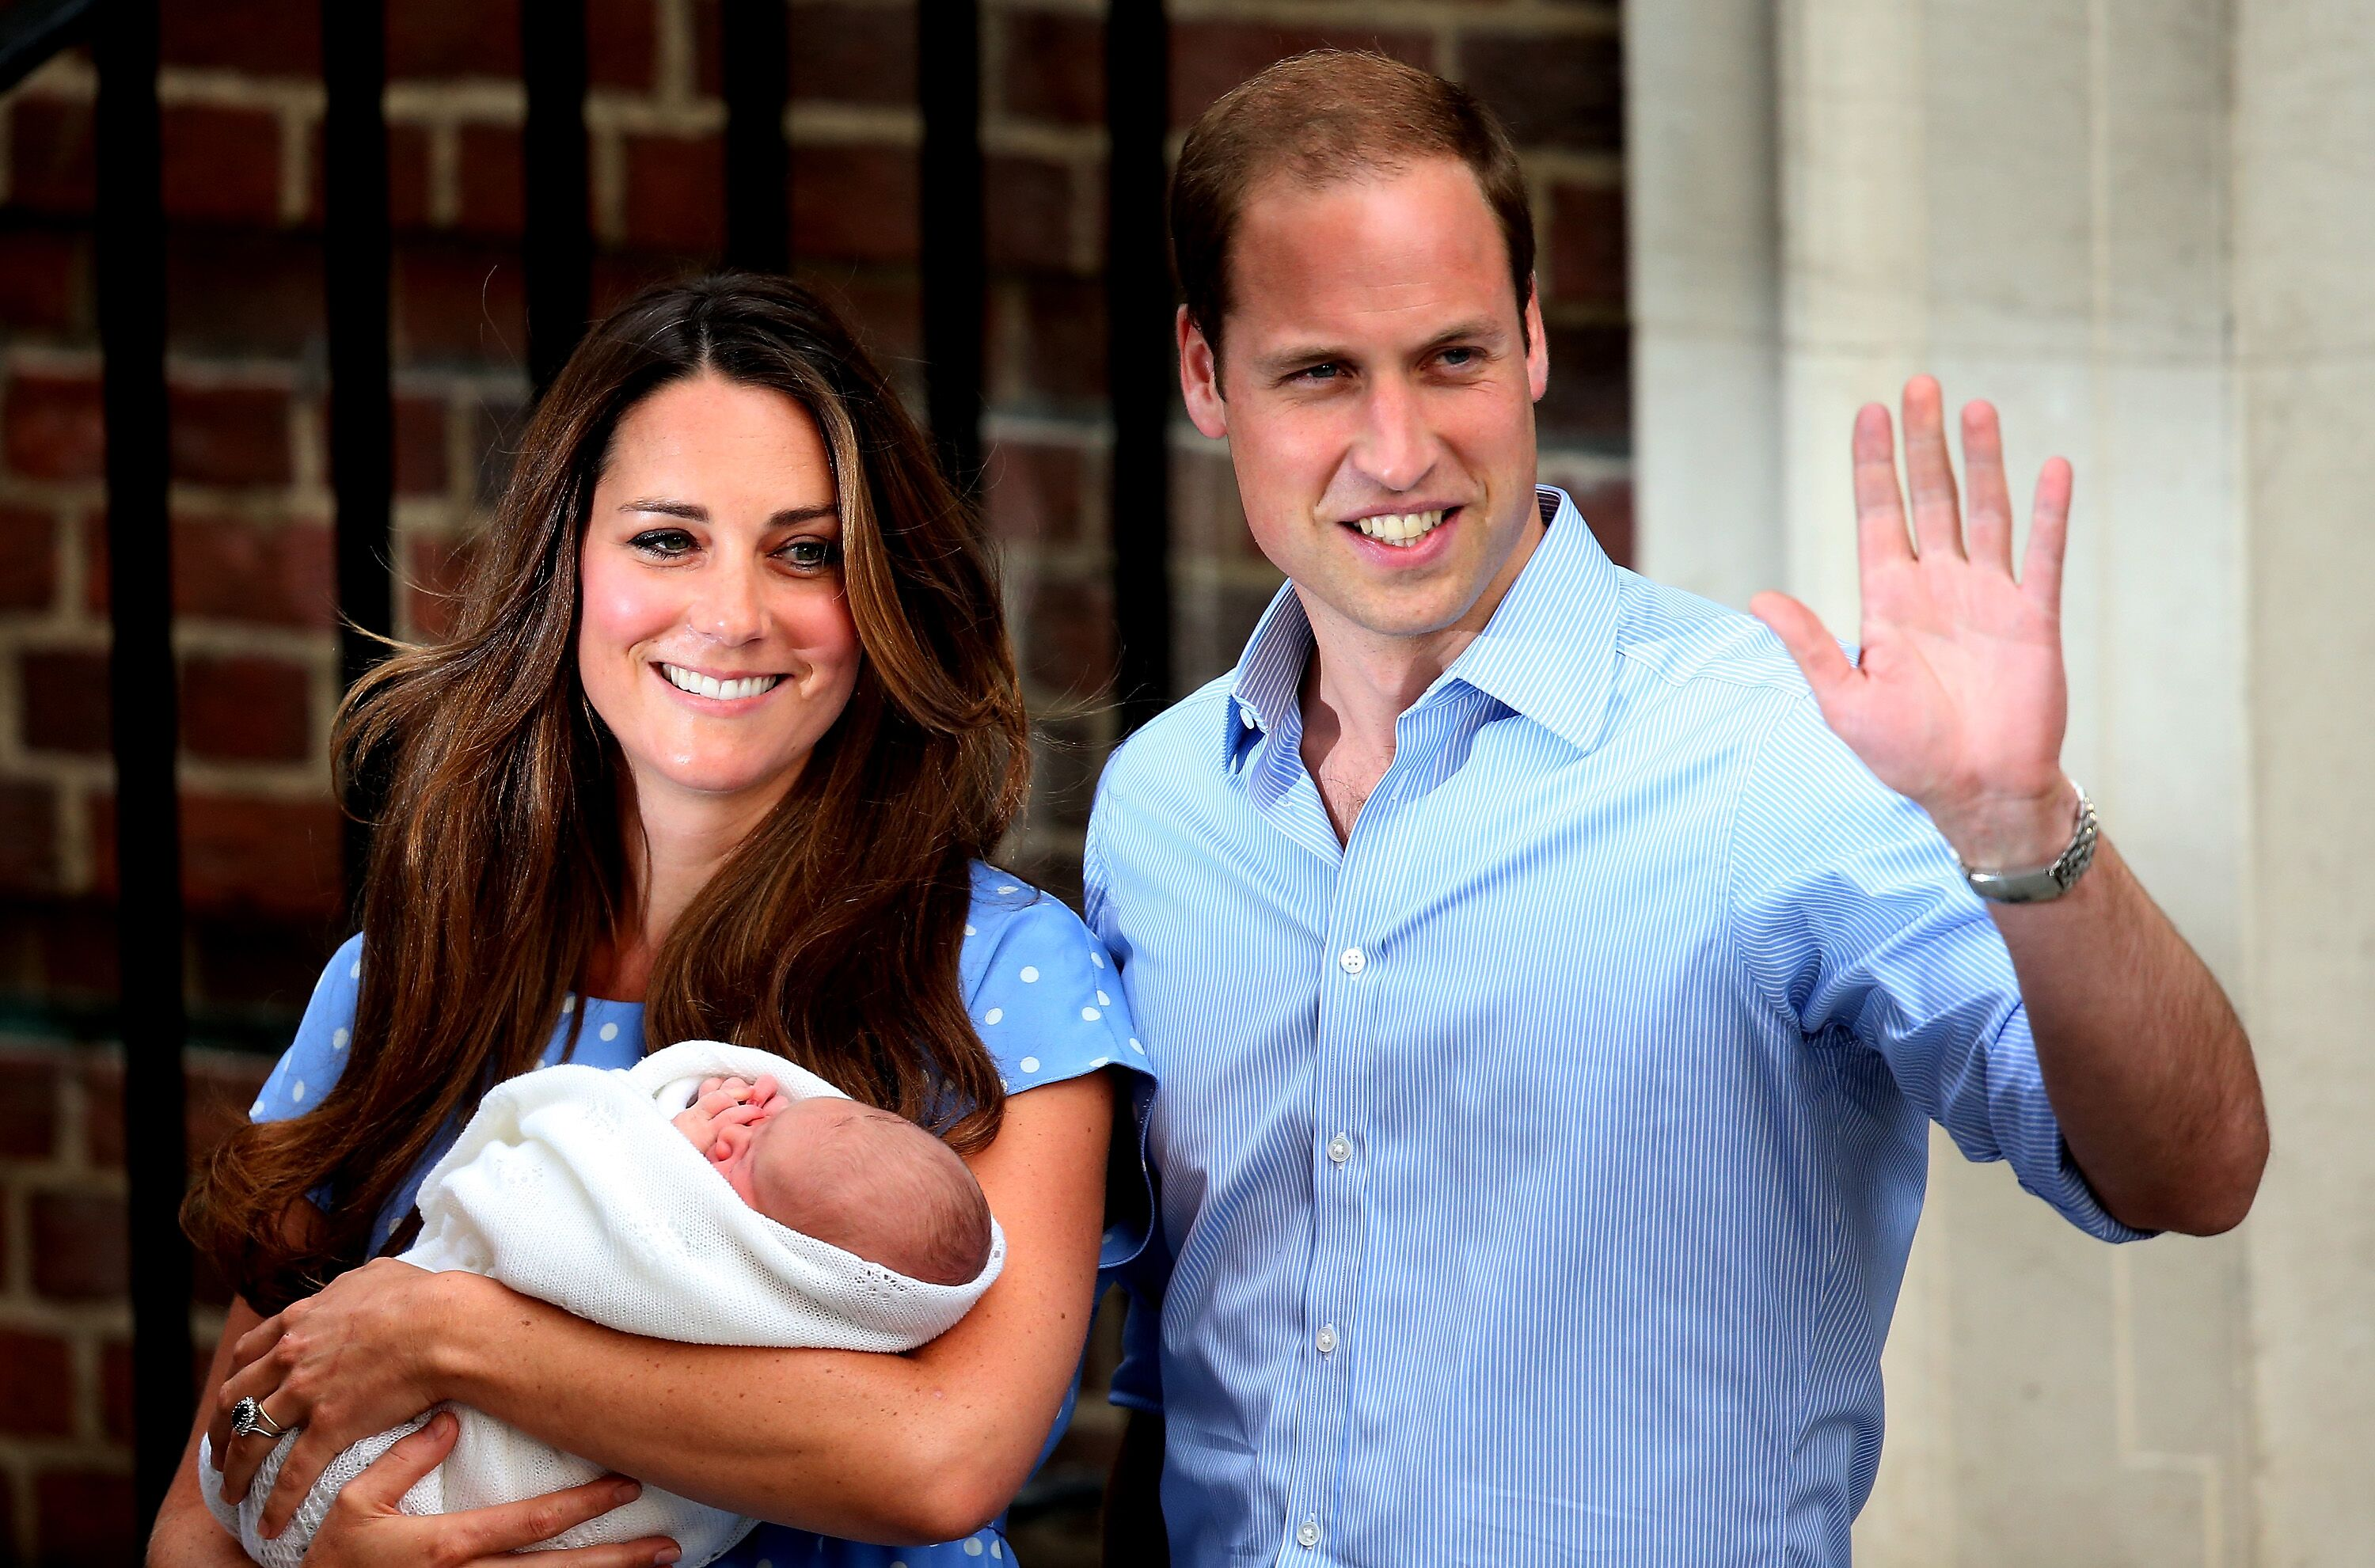 Prince William, Duke of Cambridge and Catherine, Duchess of Cambridge, depart The Lindo Wing with their newborn son. | Source: Getty Images